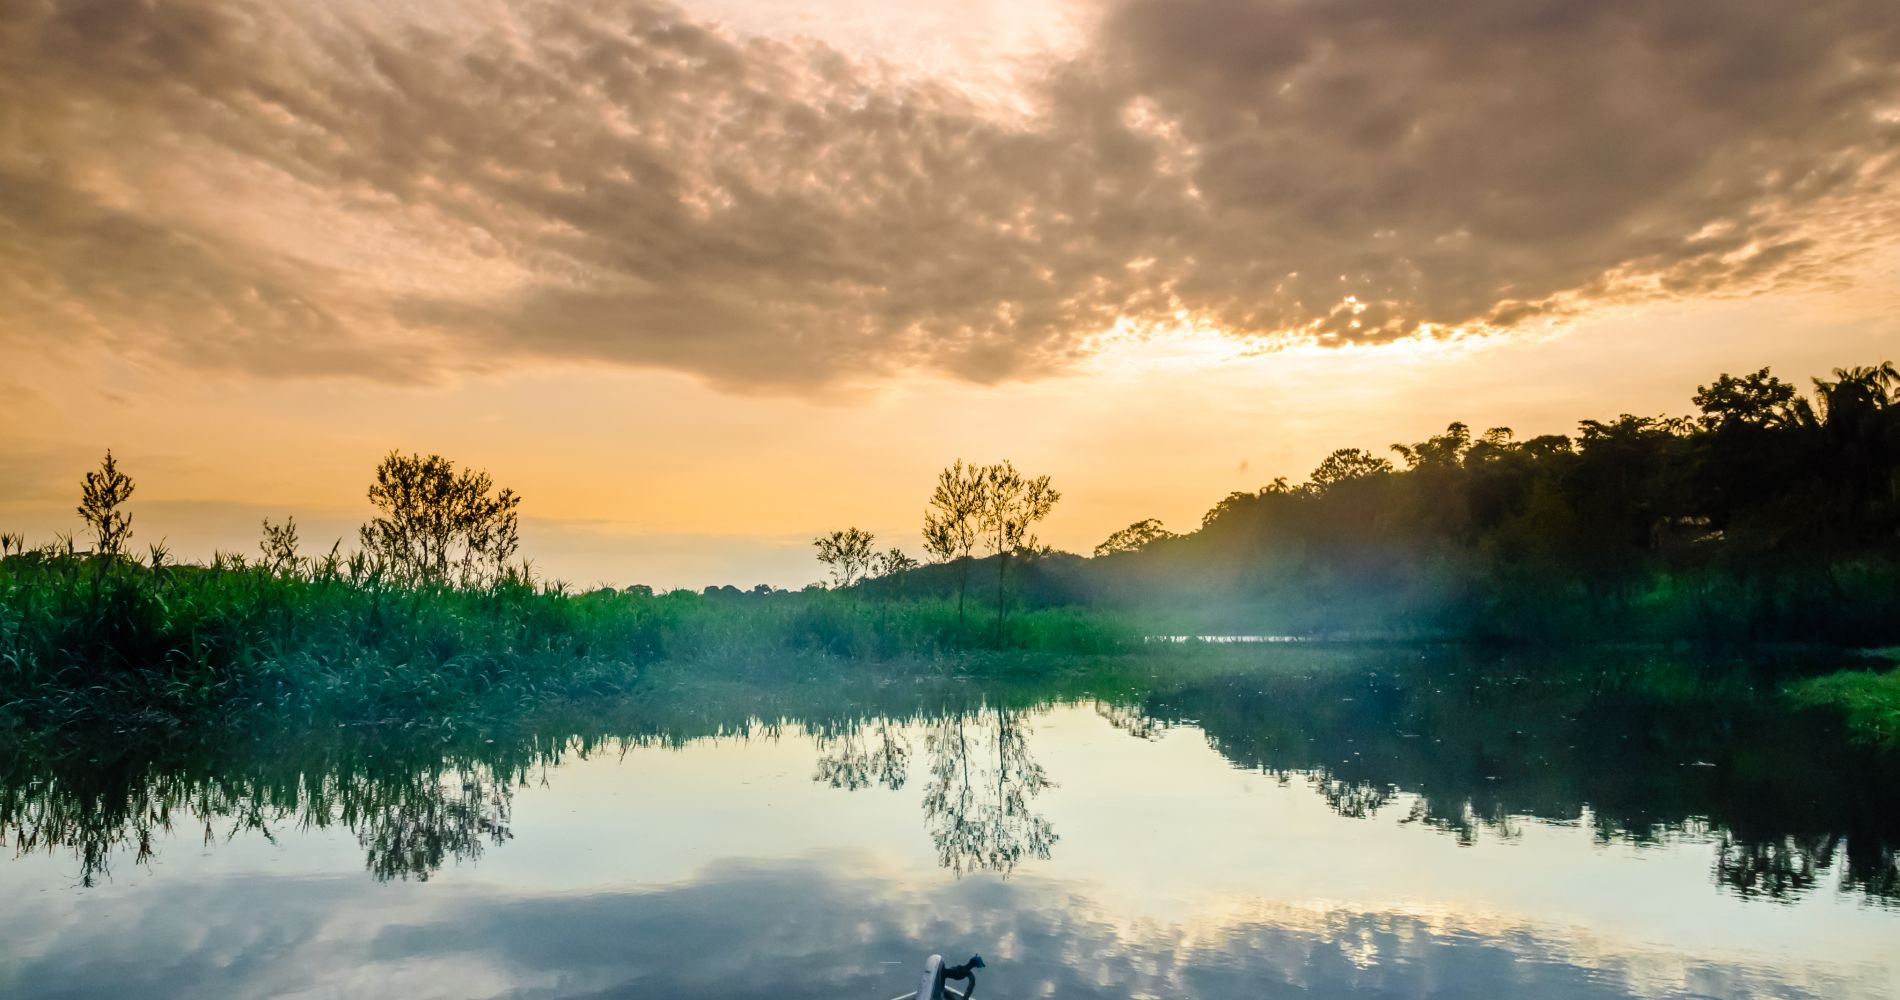 Full-Day Experience on the Amazon River in Brazil for Two